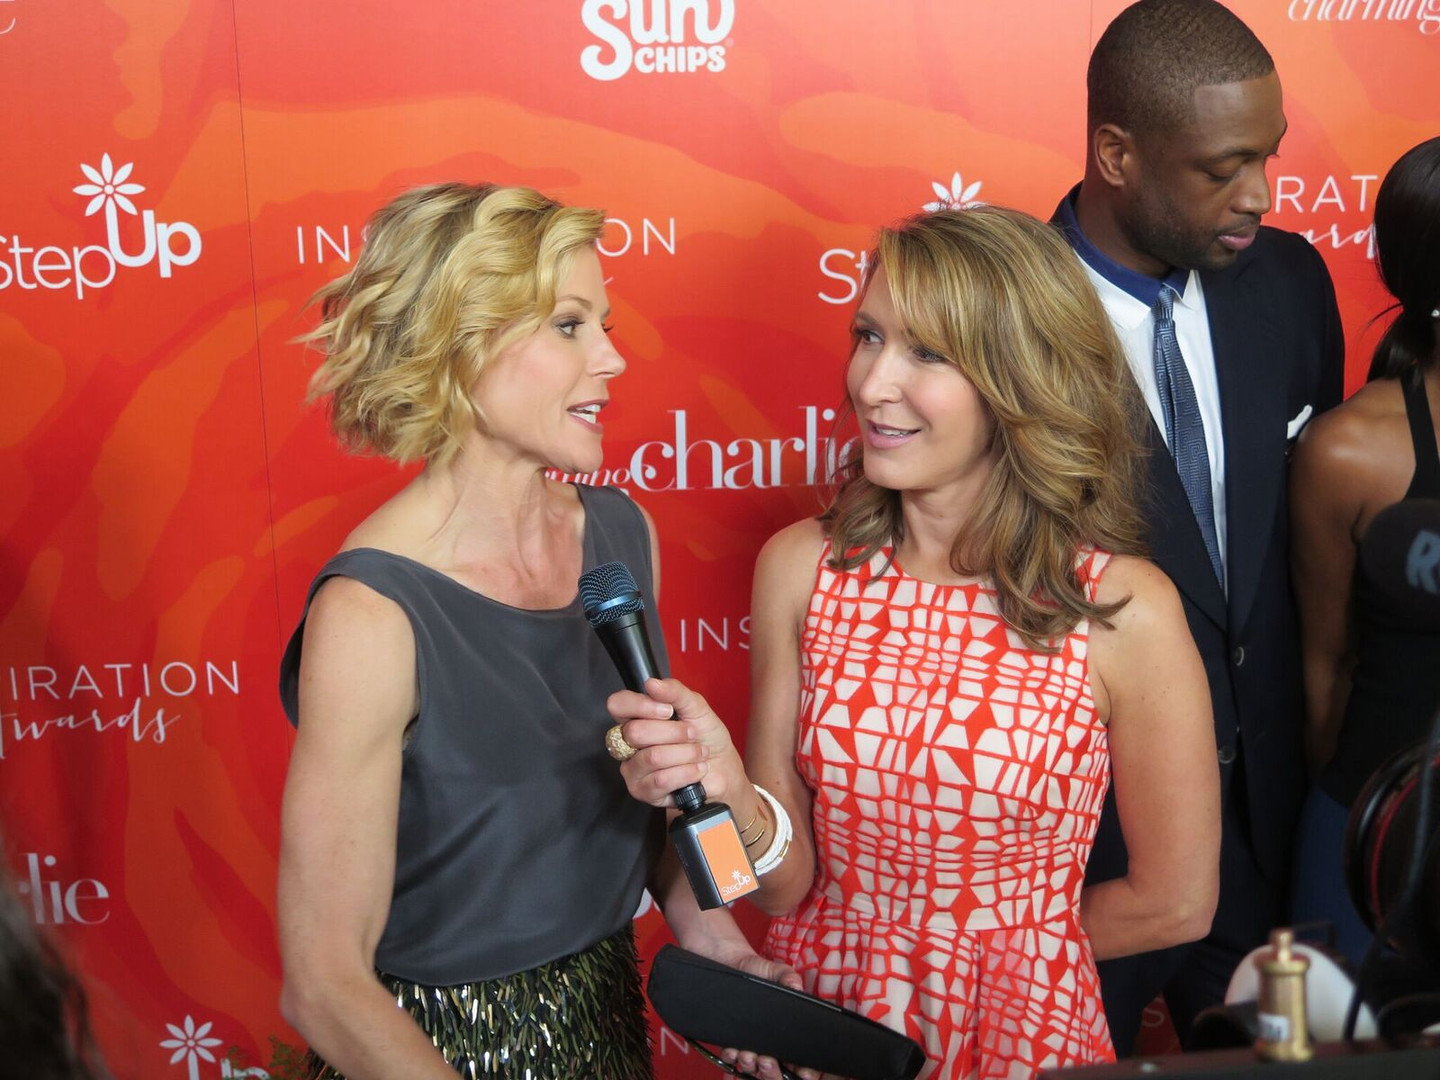 alison deyette and julie bowen.jpg